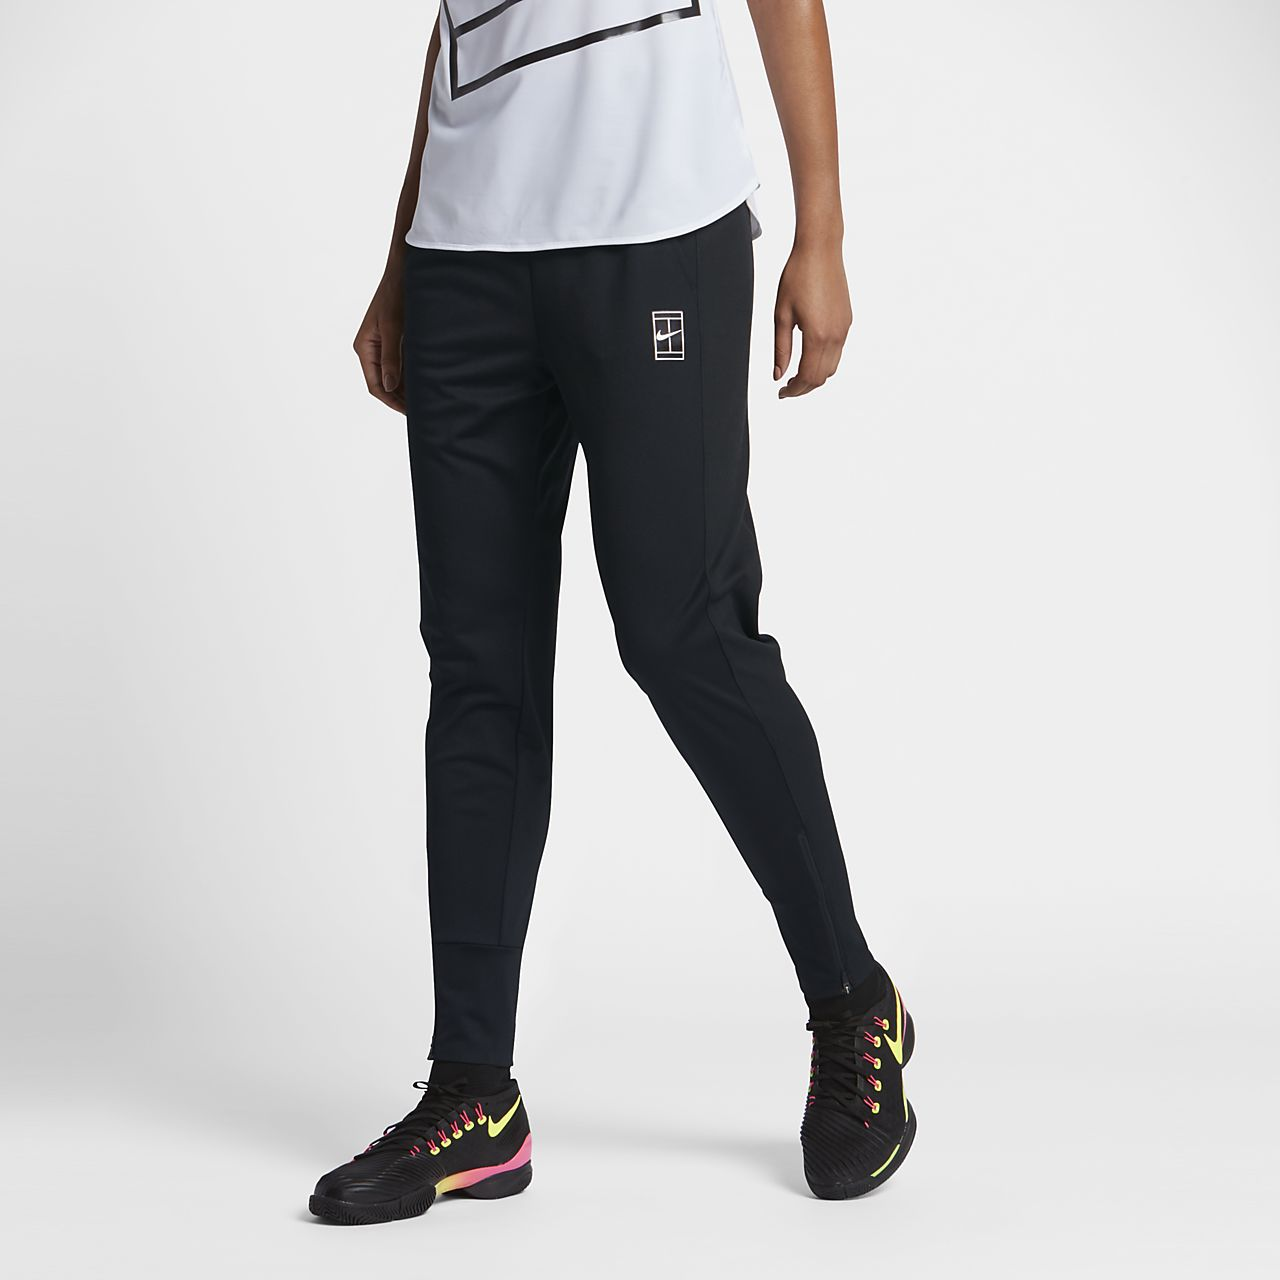 NikeCourt Dry Women's Tennis Pants Black/White